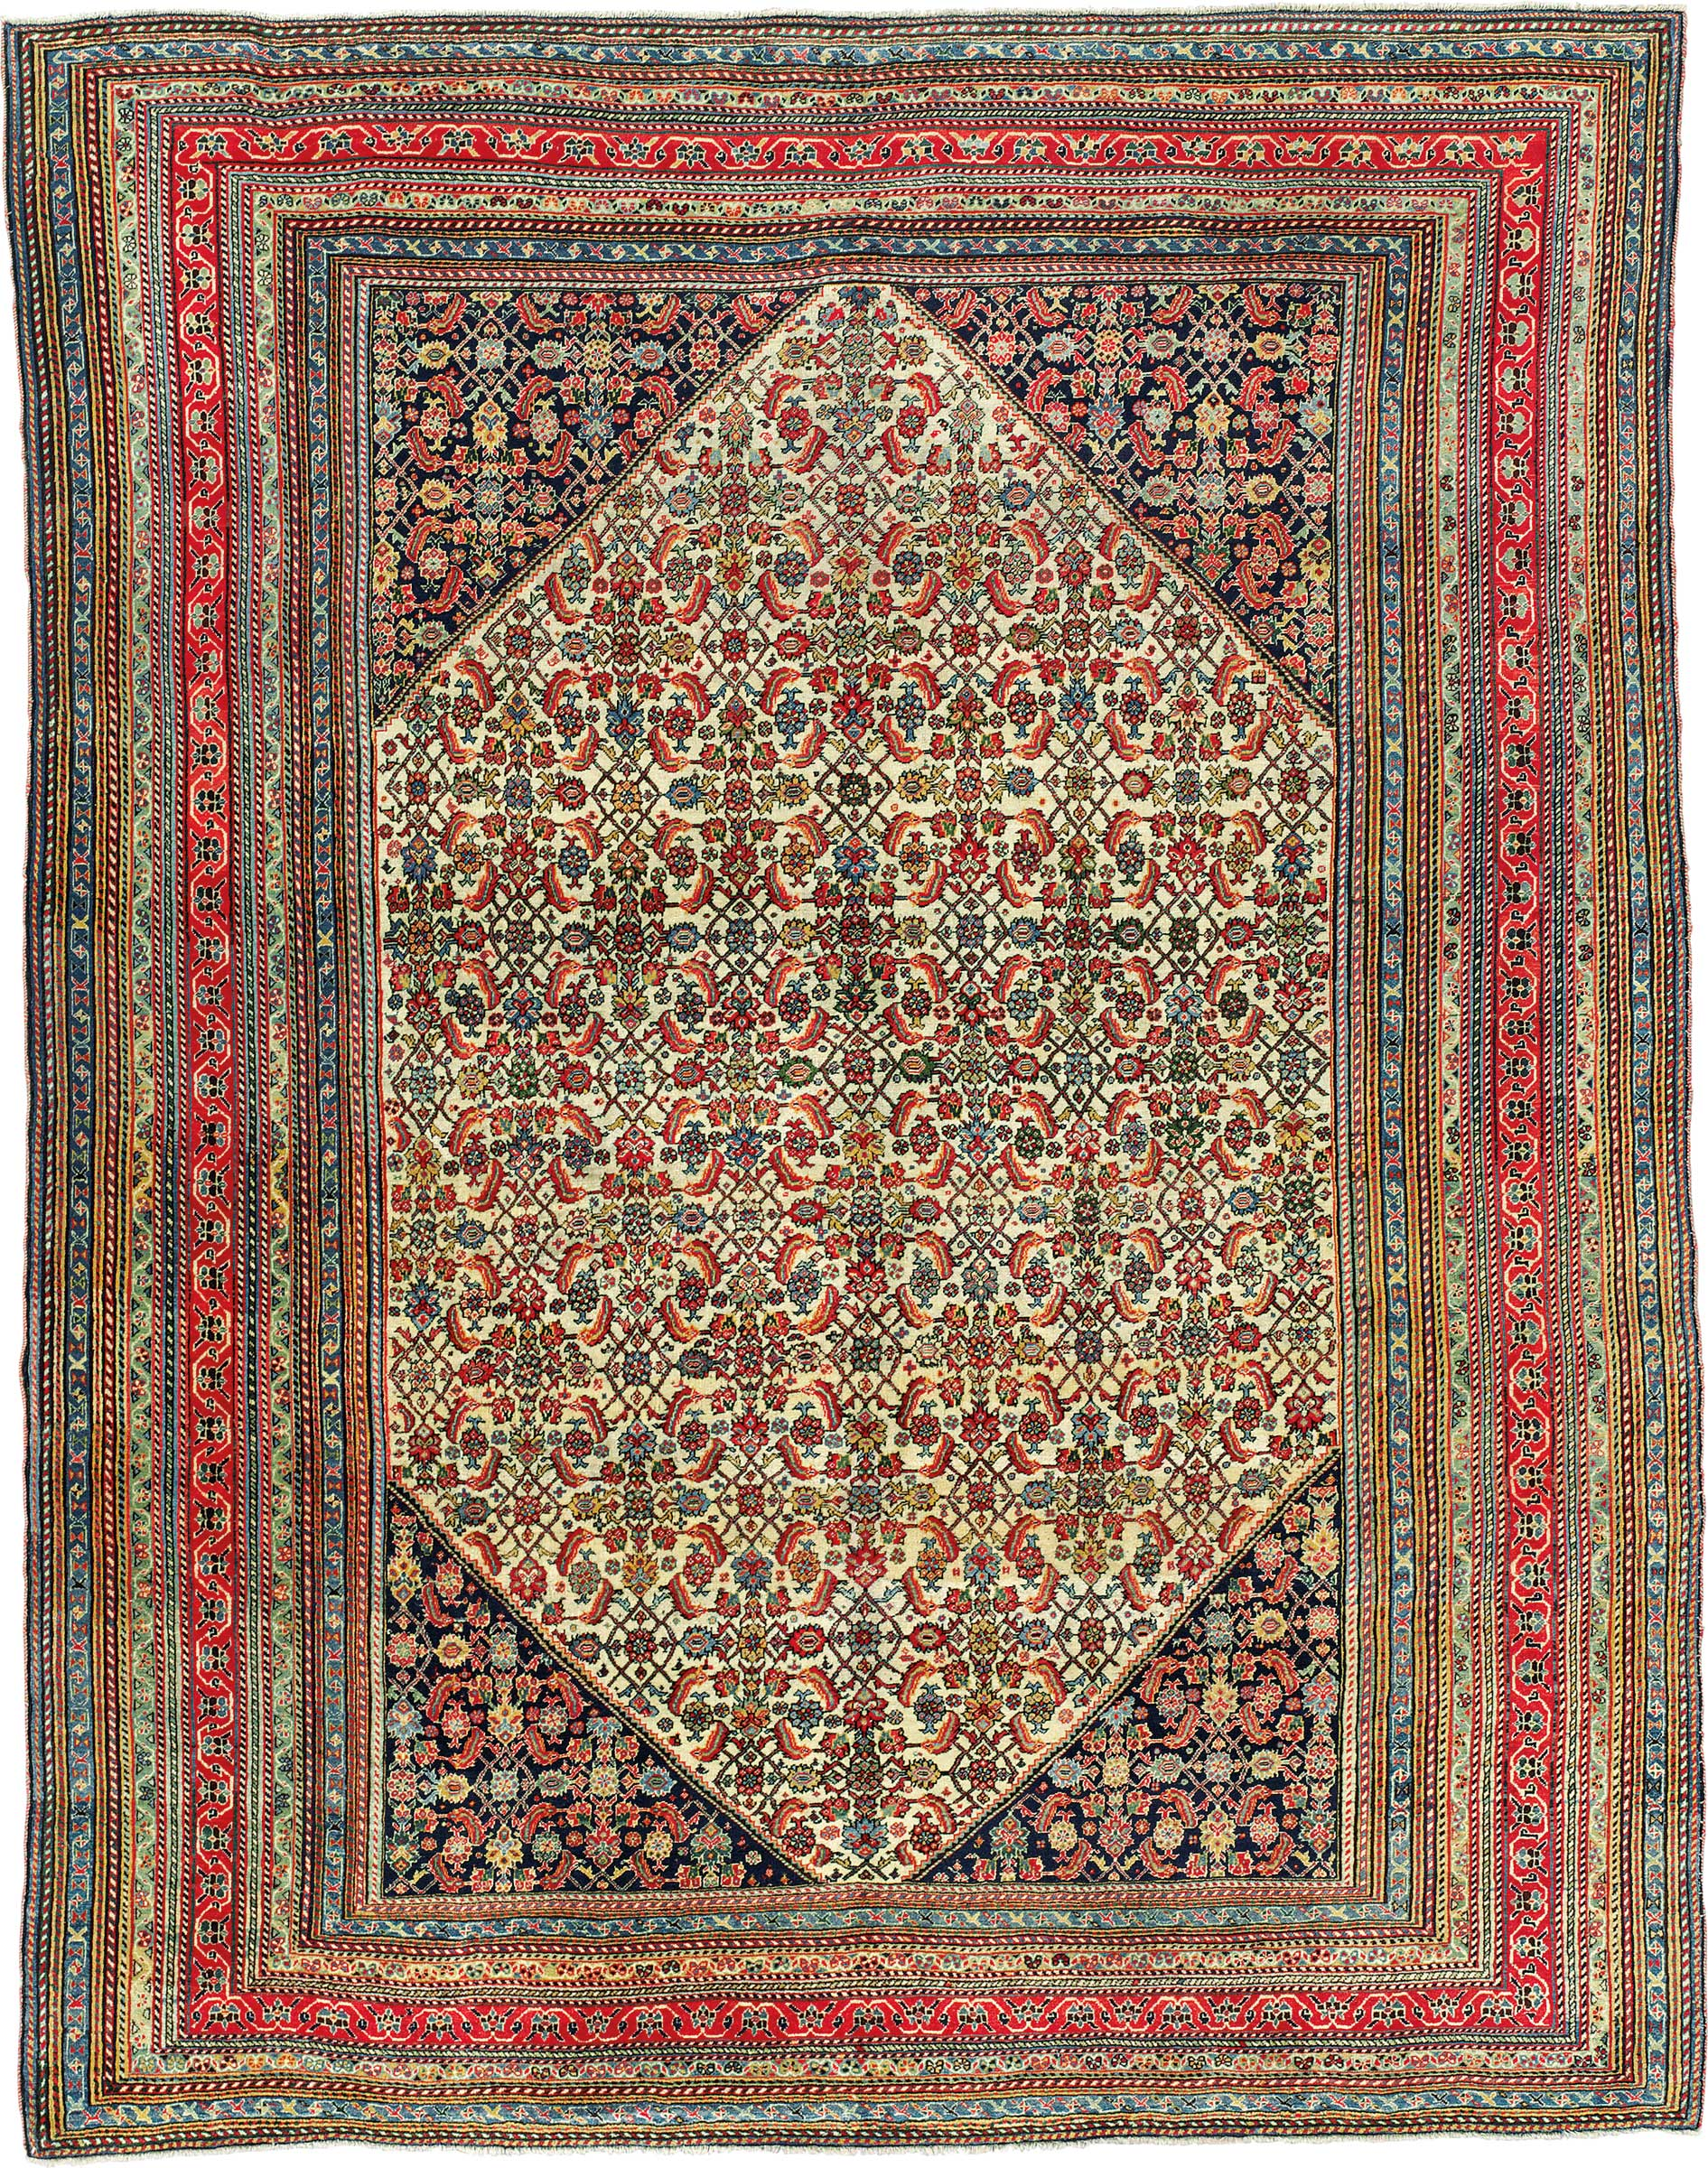 Perfect A Qashqai Rug. South Persia, Circa 1890. 8ft 1 In X 6ft 3